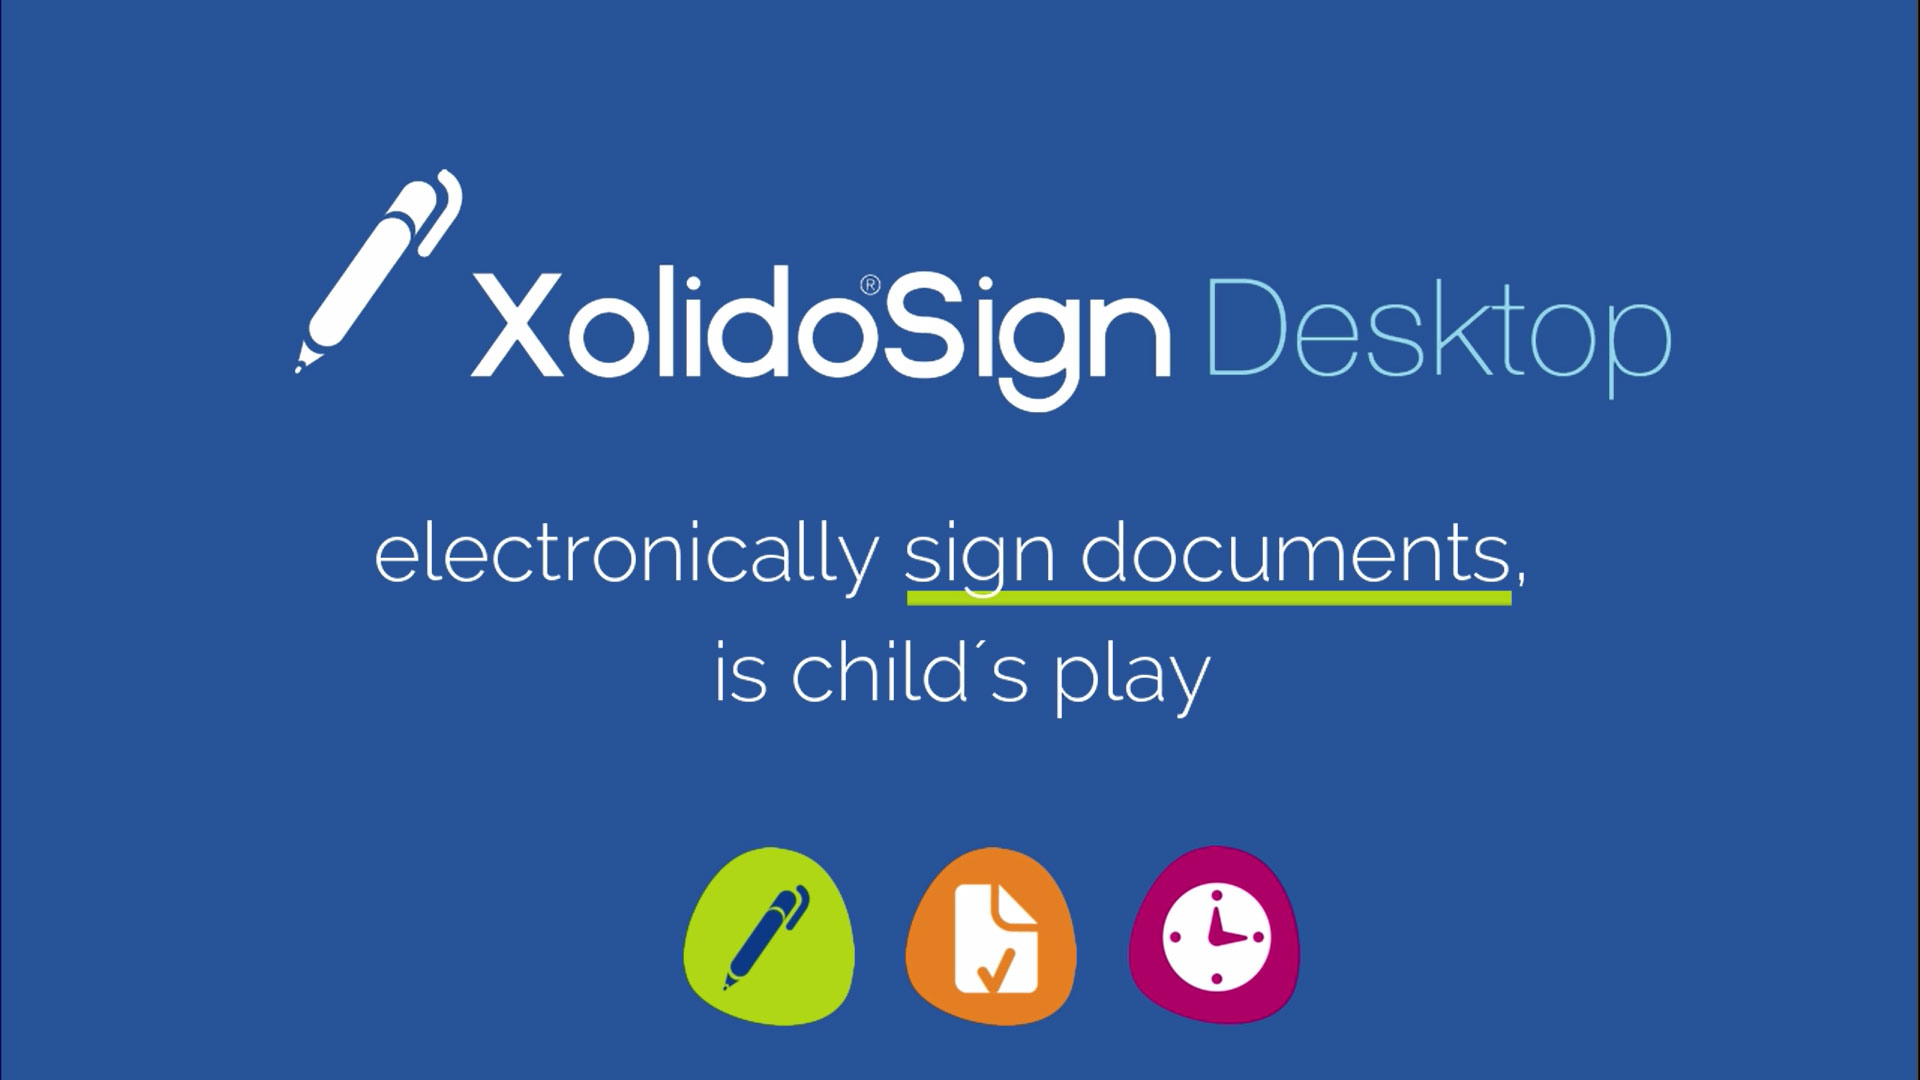 Signing electronic documents Xolido®Sign Desktop